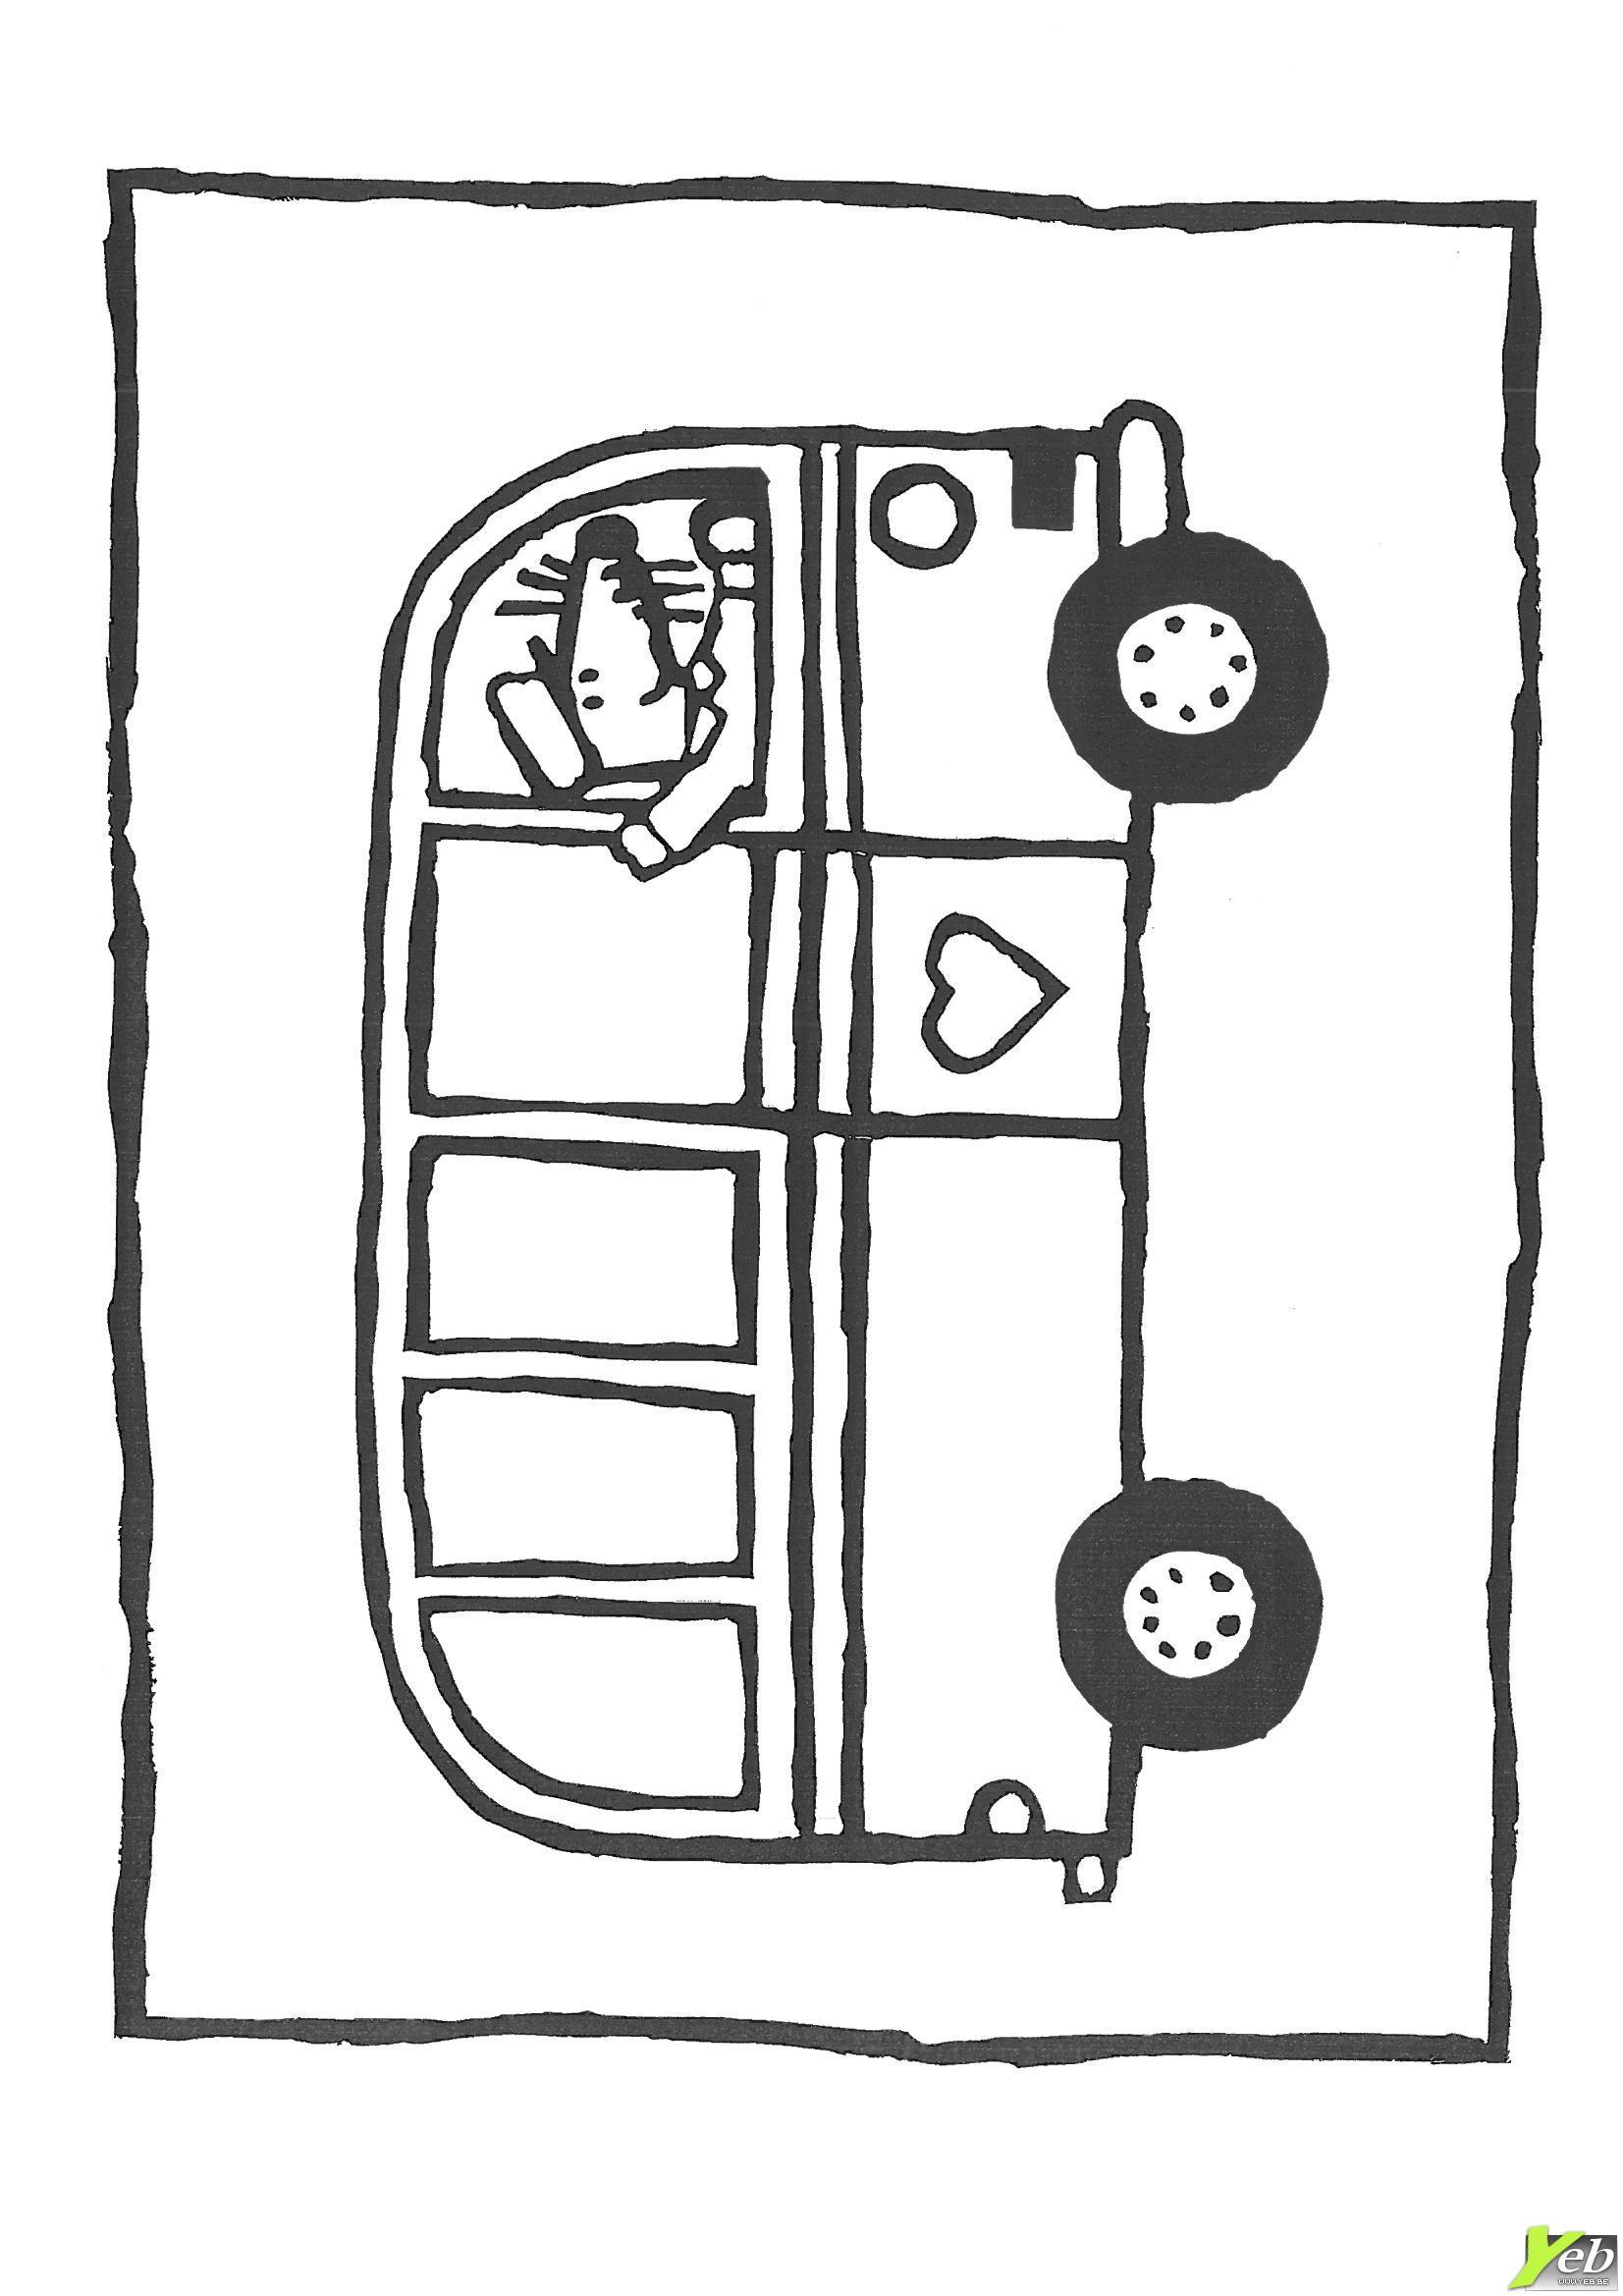 30 dessins de coloriage bus enfant imprimer - Dessin d un bus ...